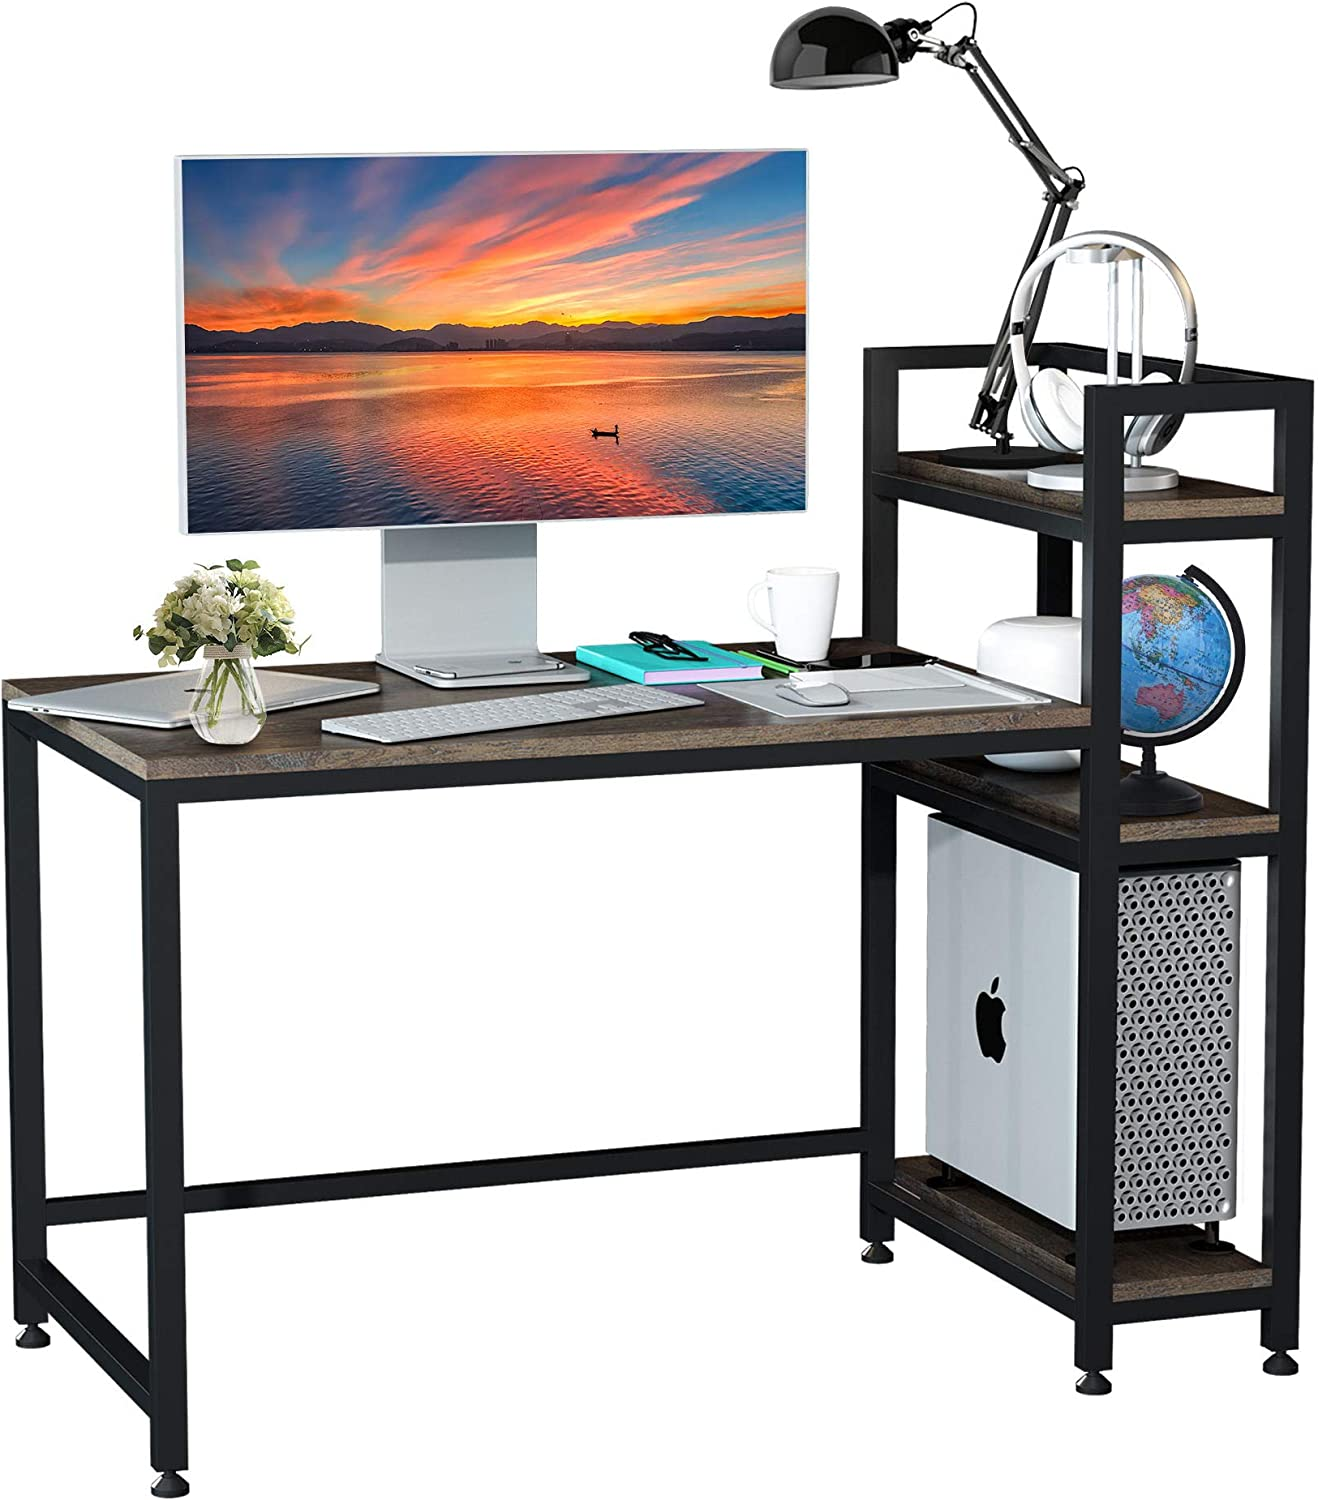 F&R Computer Desk with 3- Tiers Shelves, 54'' Modern Writing Study Desk with Printer Space for Teens, College Crafting Desk with Storage for Bedrooms, Home, Office, Workstation, Easy to Assemble, Wood